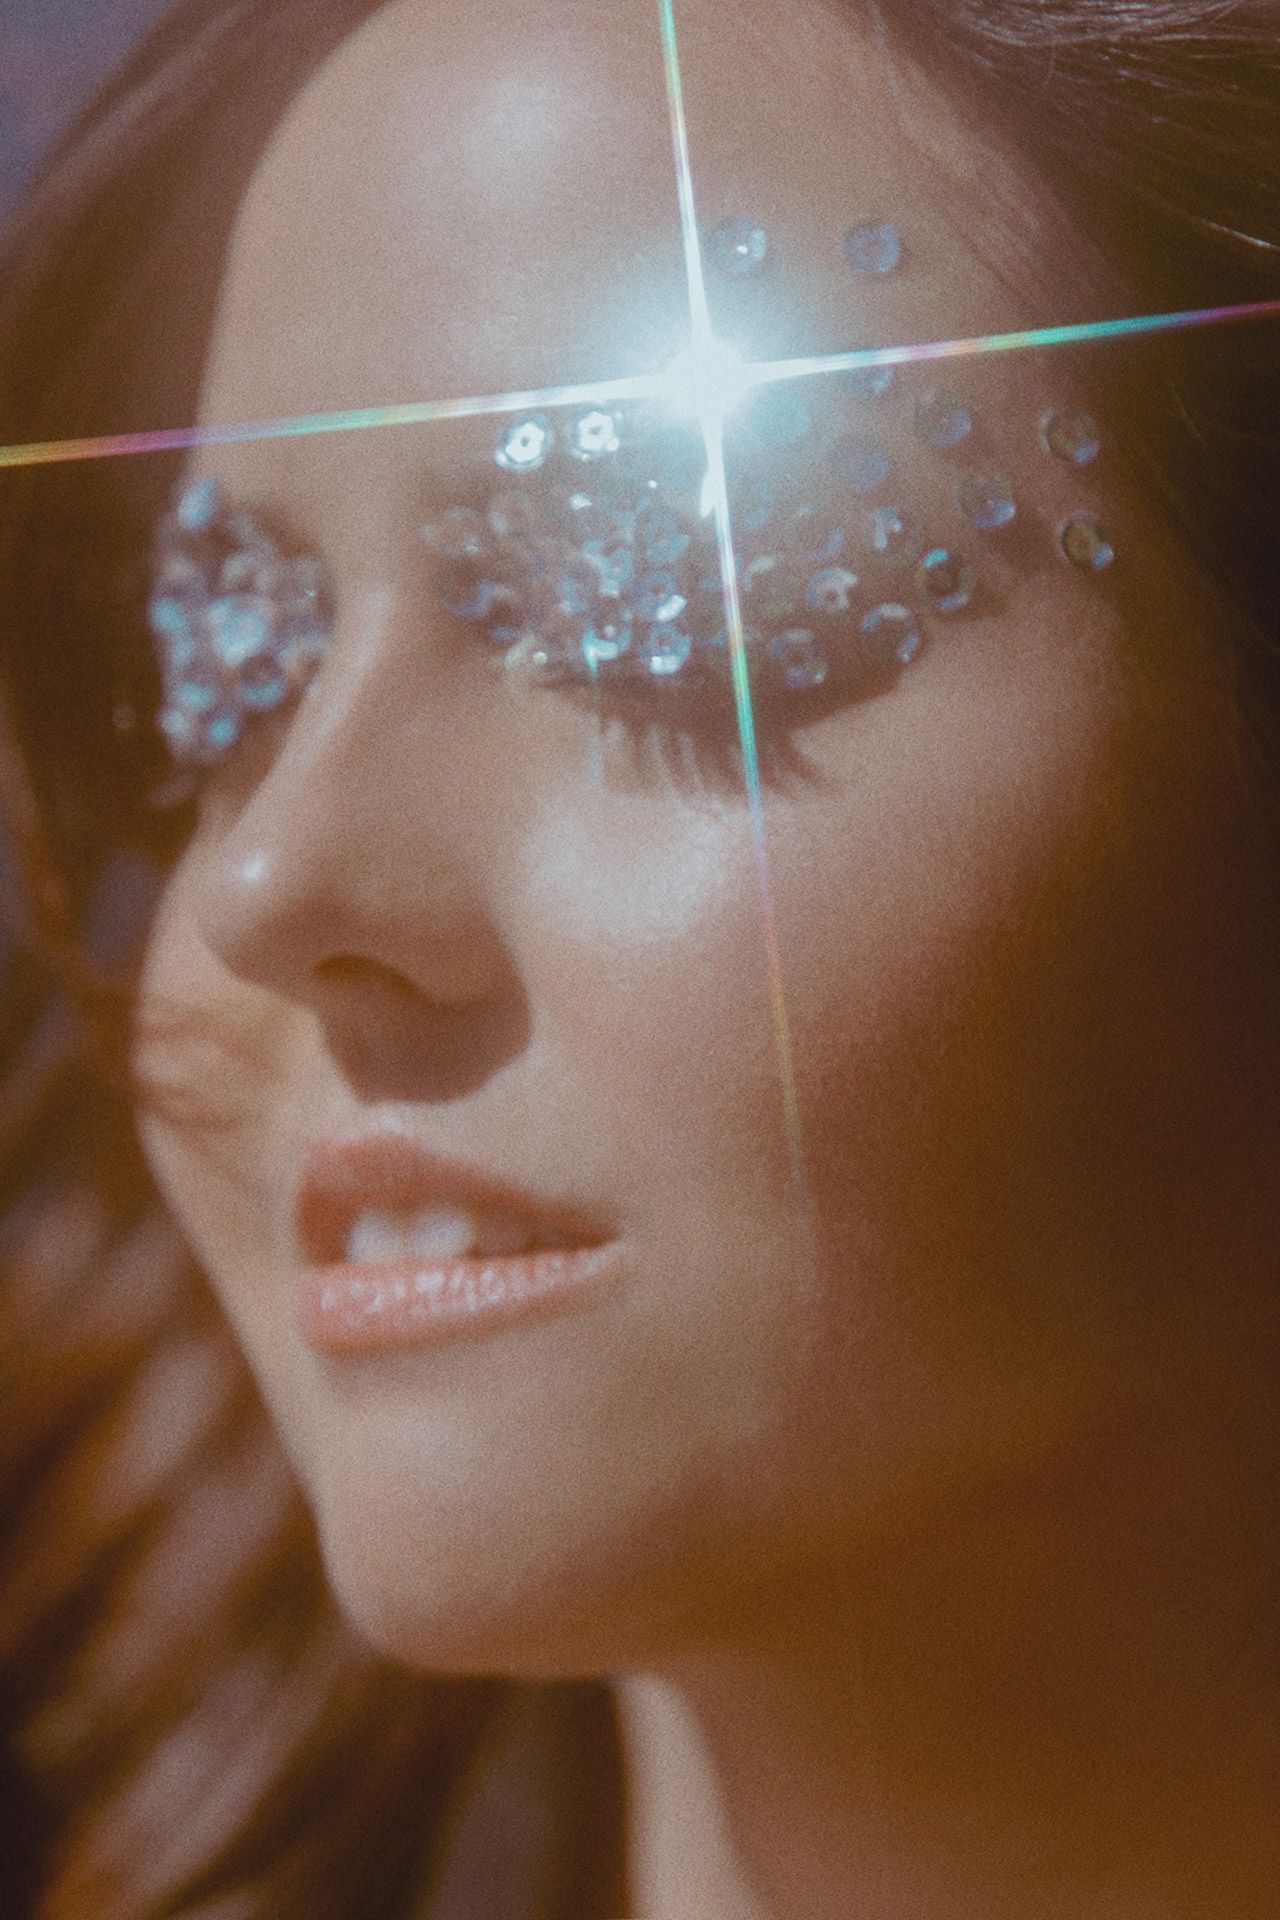 Ariane Moffatt shot by Kelly Jacob for her album Petites Mains Précieuses with silver sequins on her eyelids